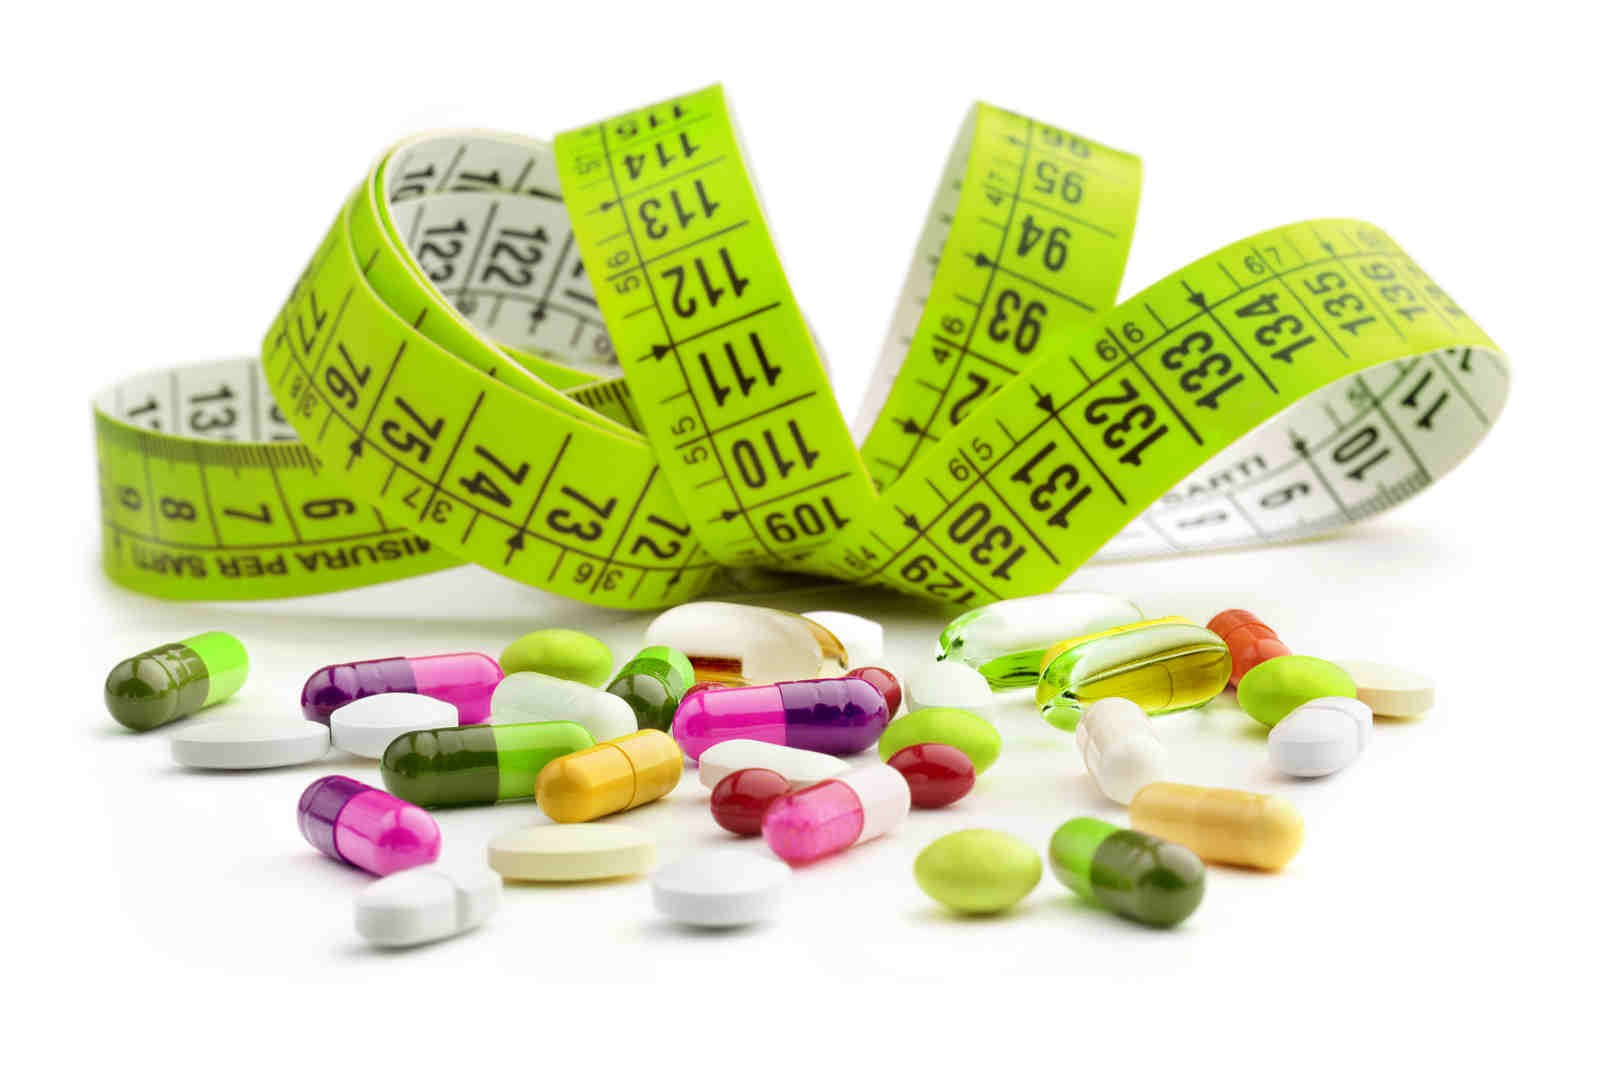 WEIGHT LOSS SUPPLEMENTS IN 2020